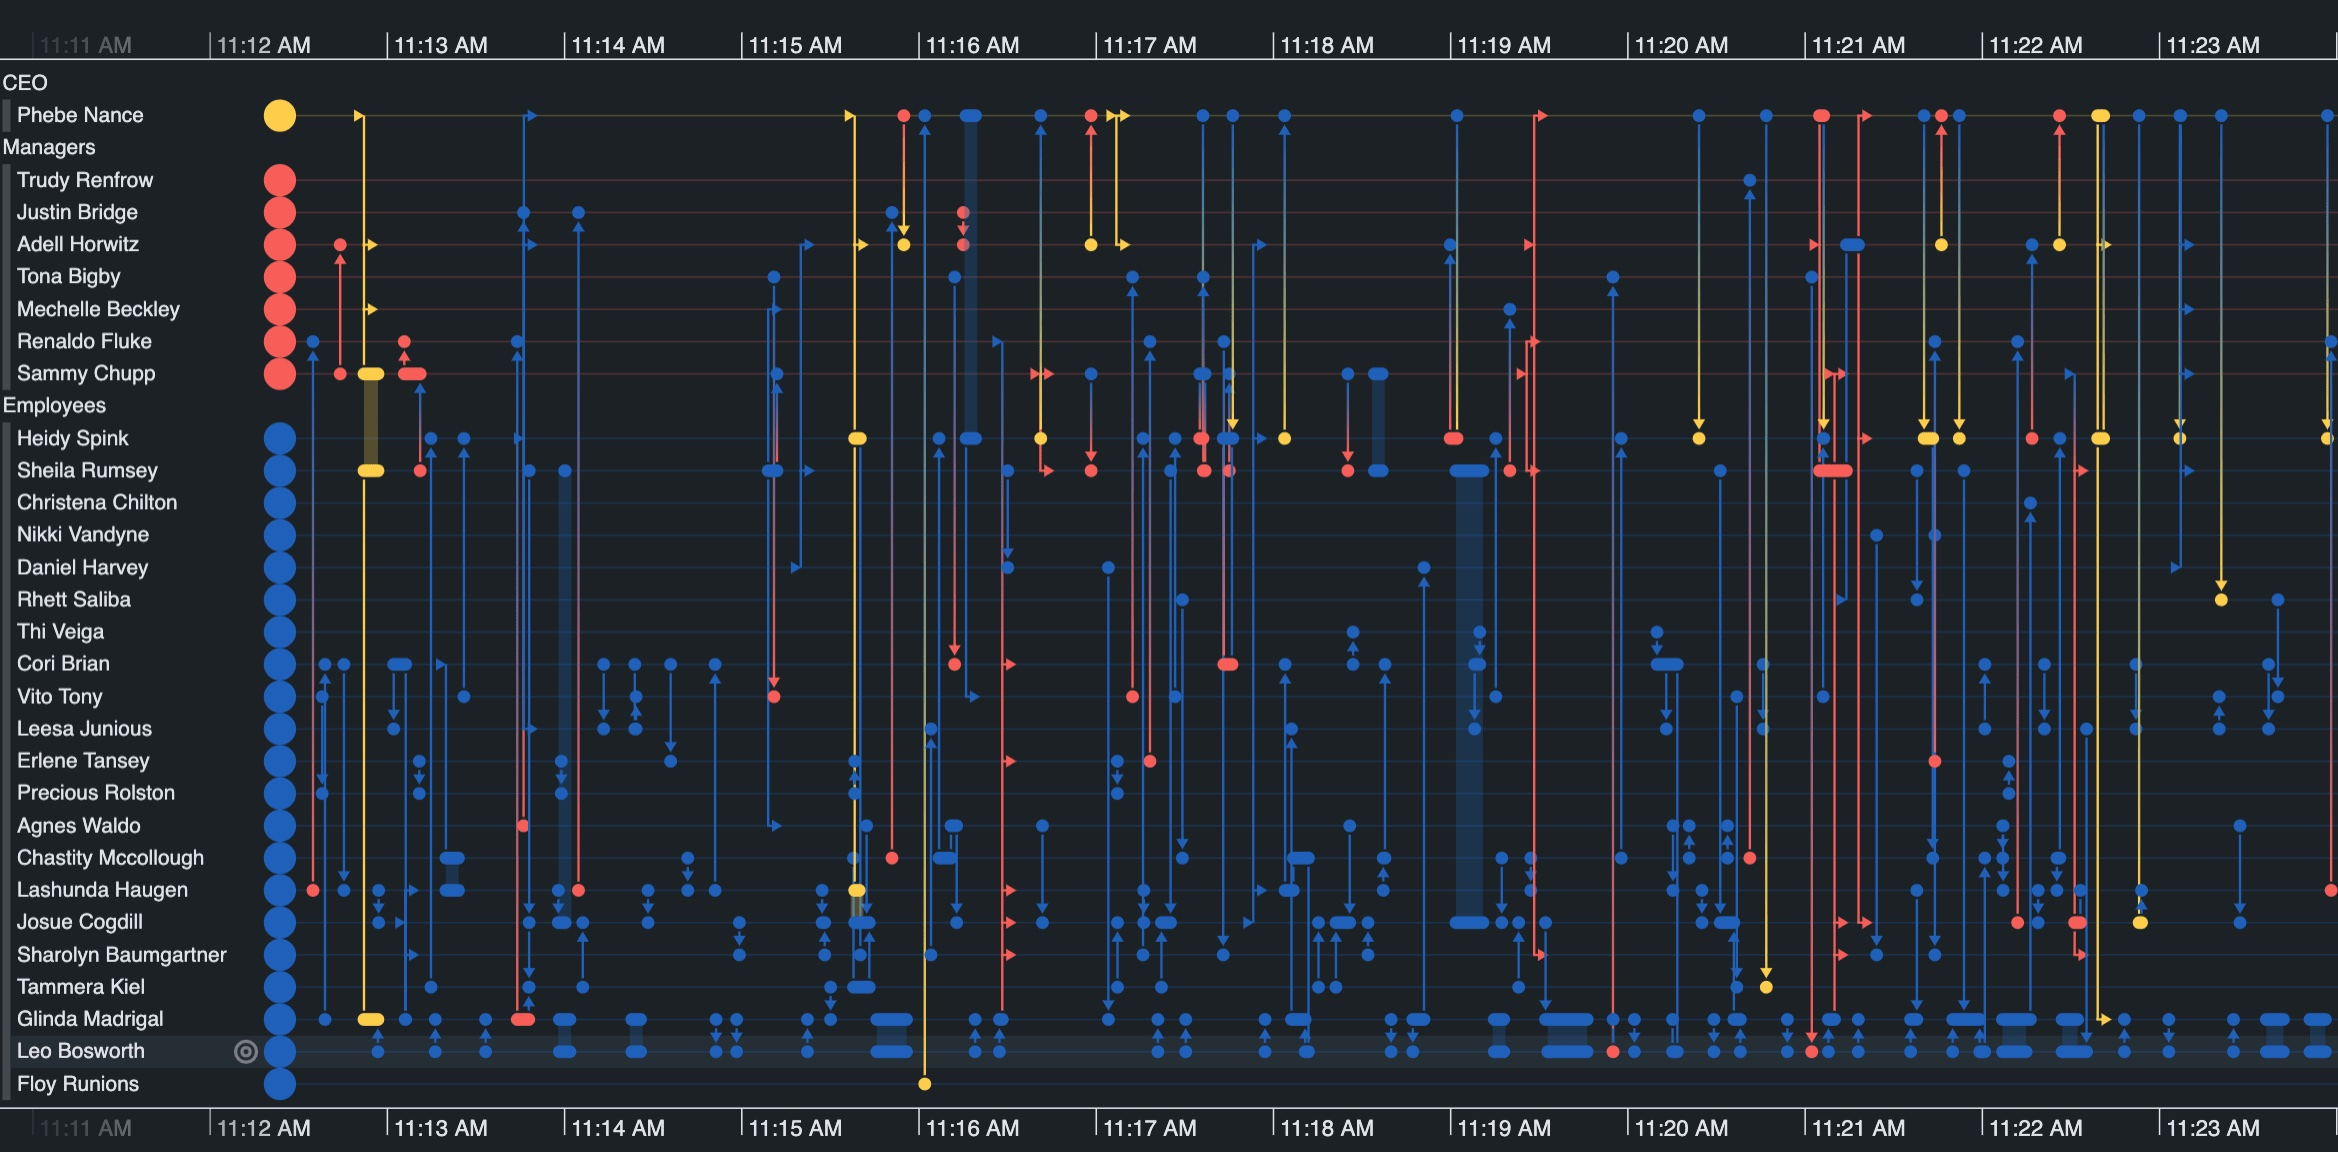 Pattern of life analysis, powered by the KronoGraph timeline visualization toolkit